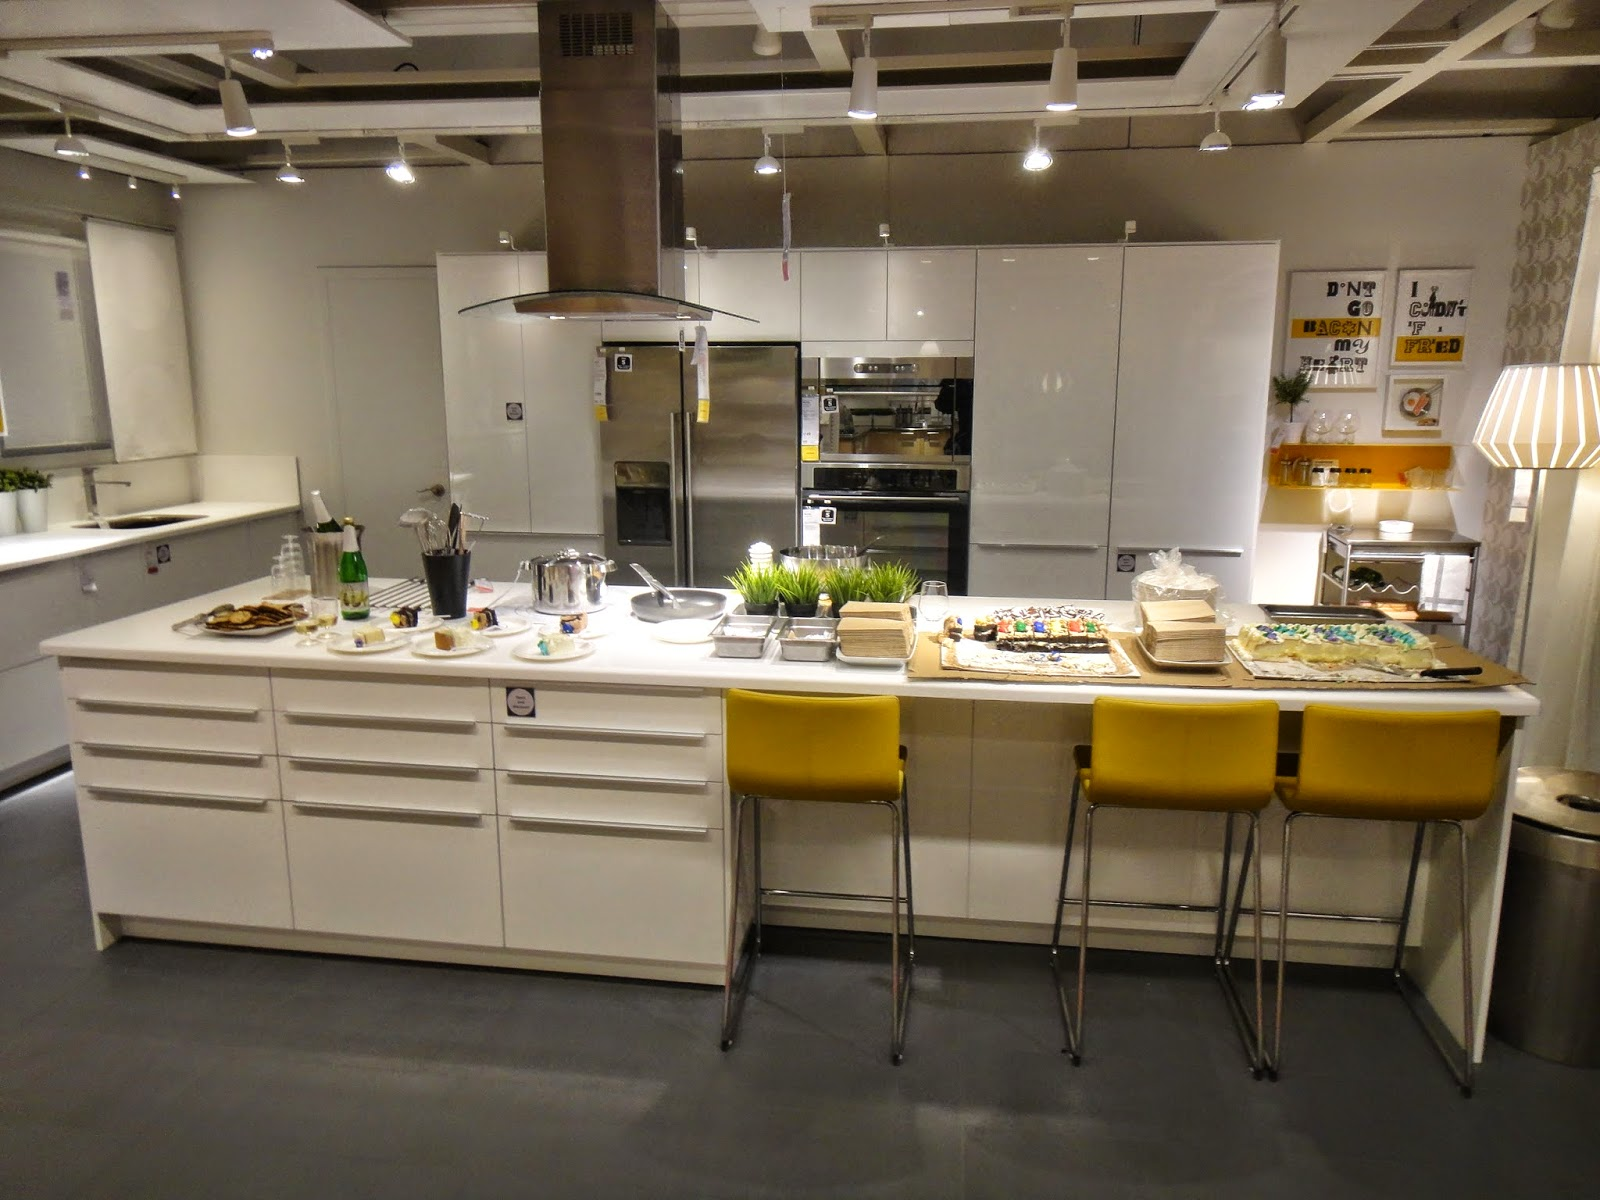 Studio Kosnik Ikea 39 S Sektion The Good The Bad And The Functional Review Part 2